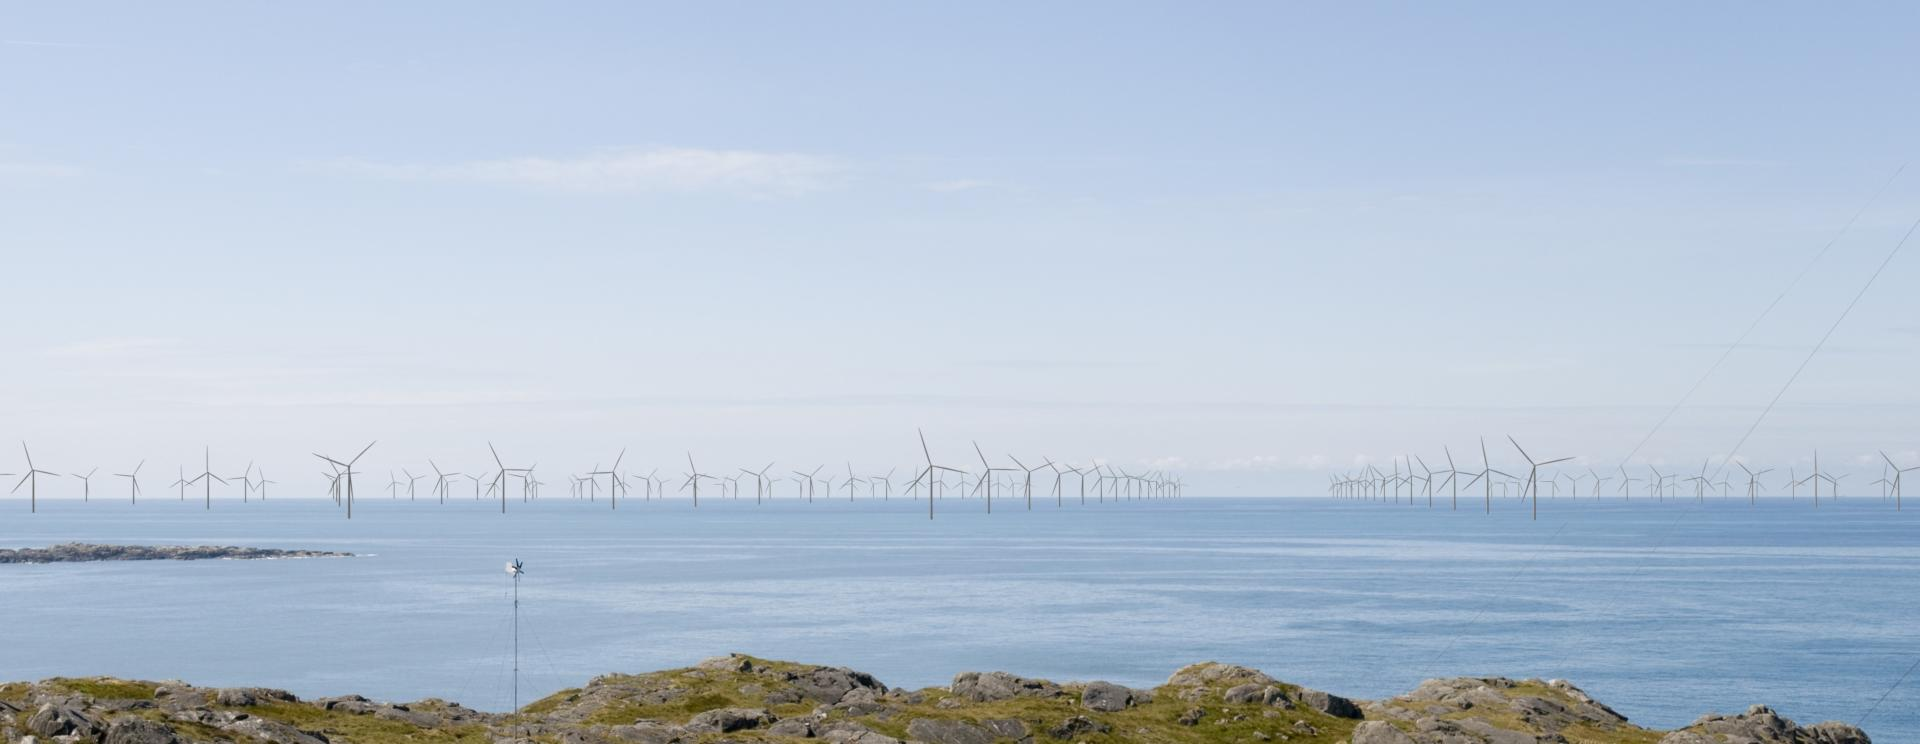 Kjeller Vindteknikk is proud to have supported Equinor's offshore wind project development off the coast of New York.